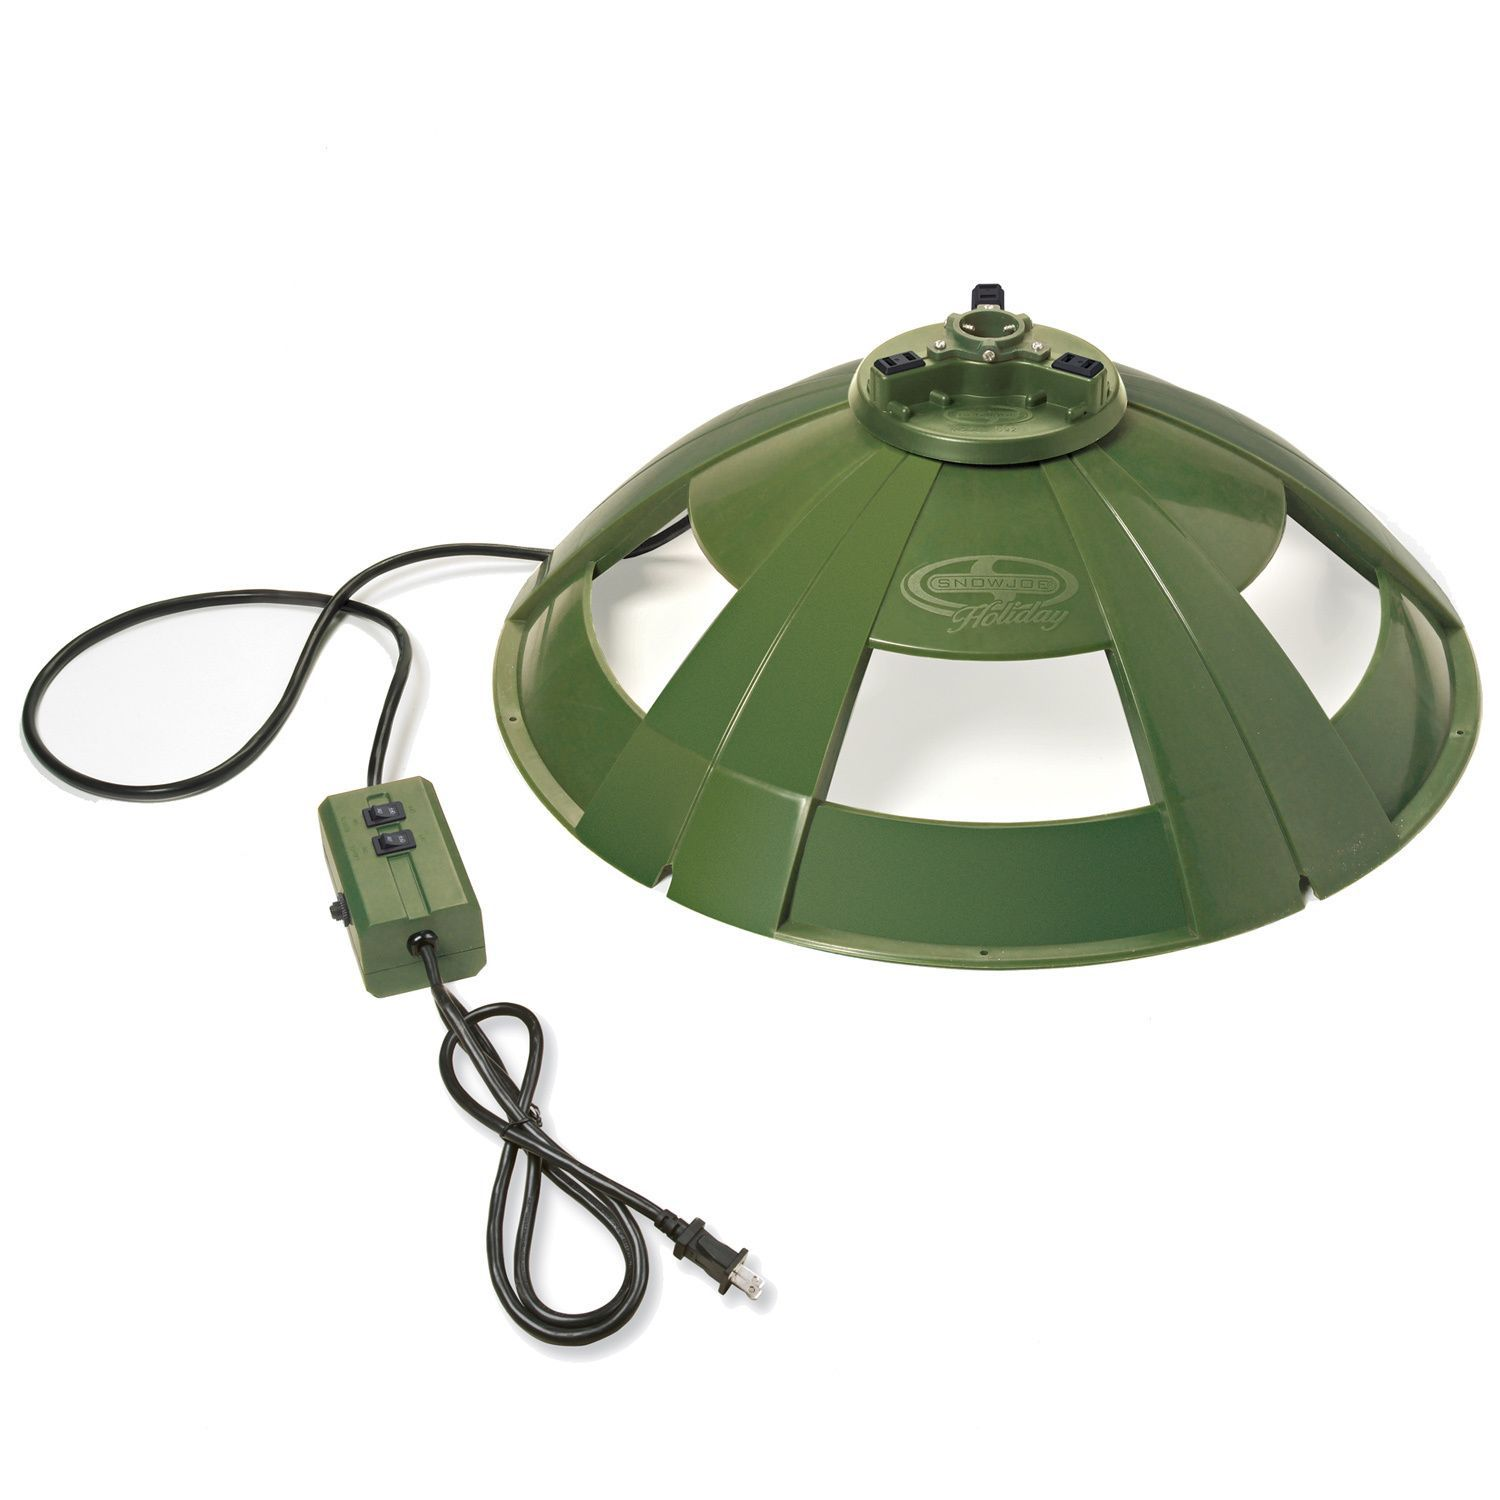 Snow Joe Holiday Rotating Tree Stand for Artificial Trees ...